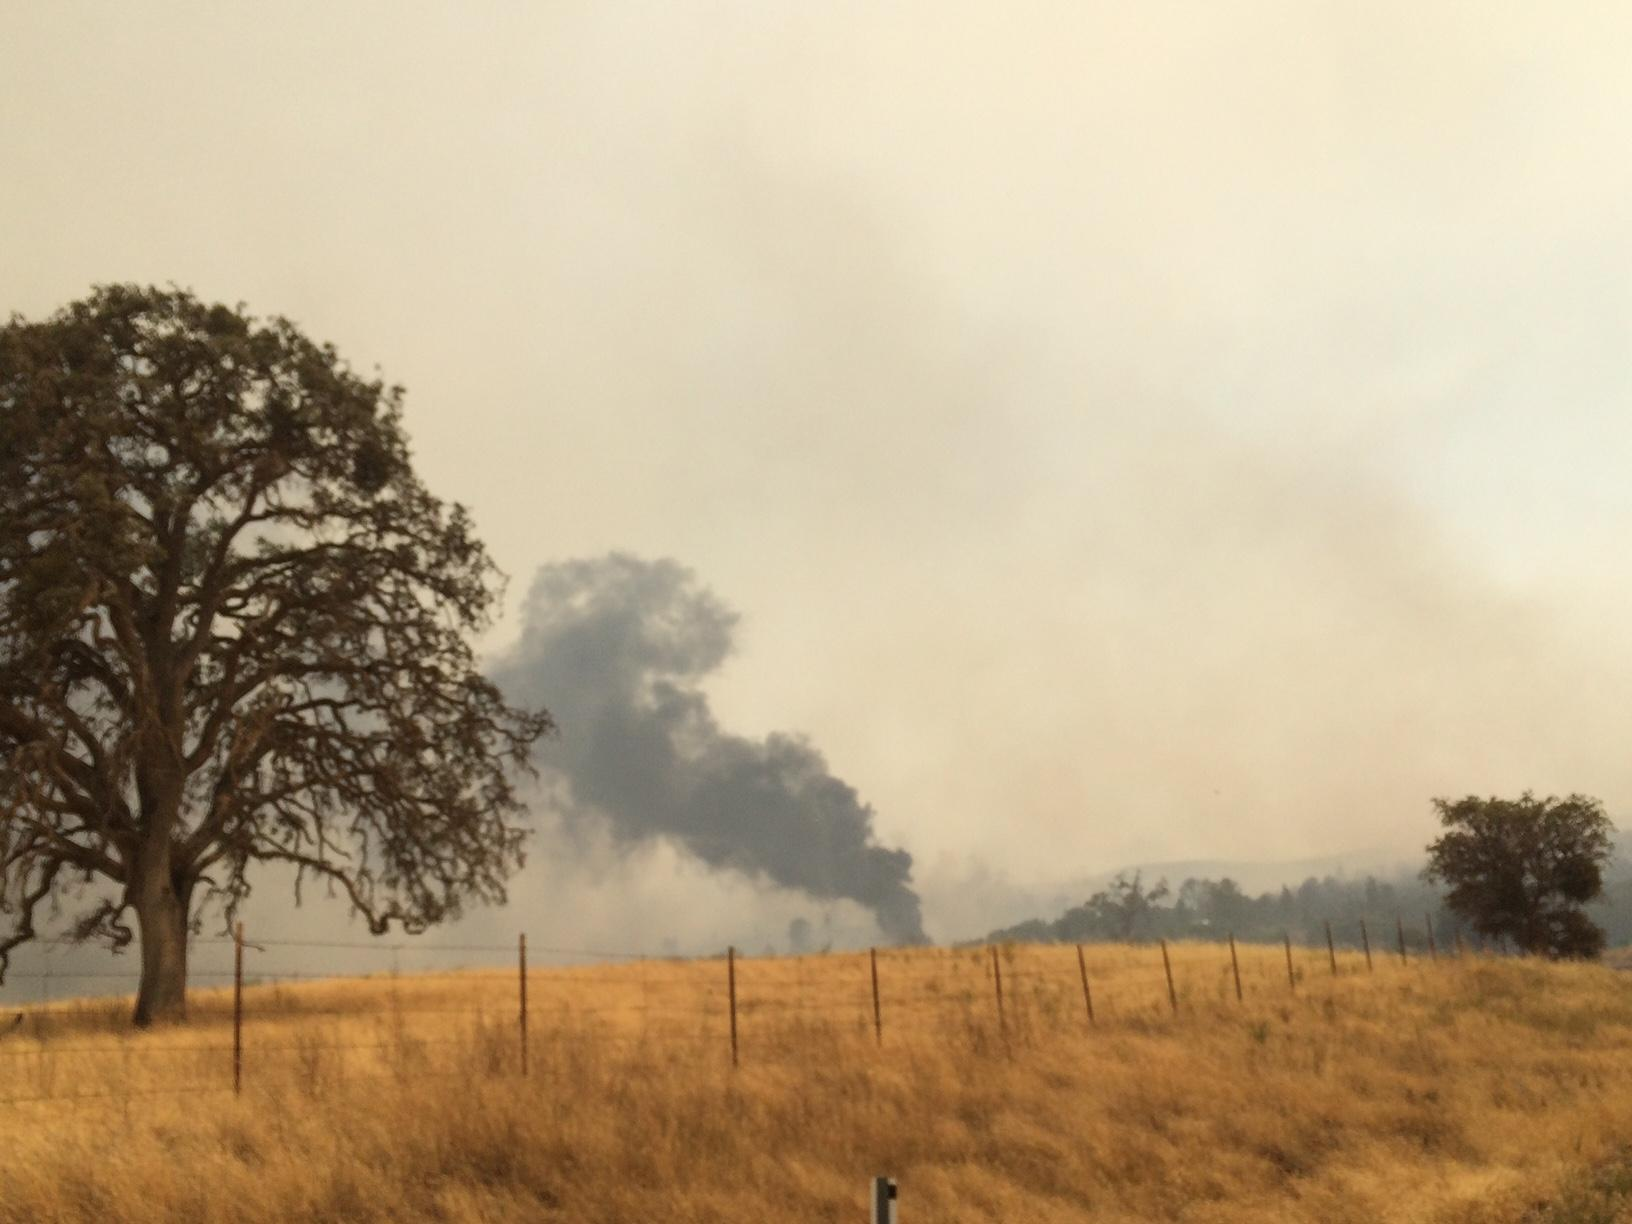 Evacuations canceled for North Fire in Happy Valley - currently, six acres burned